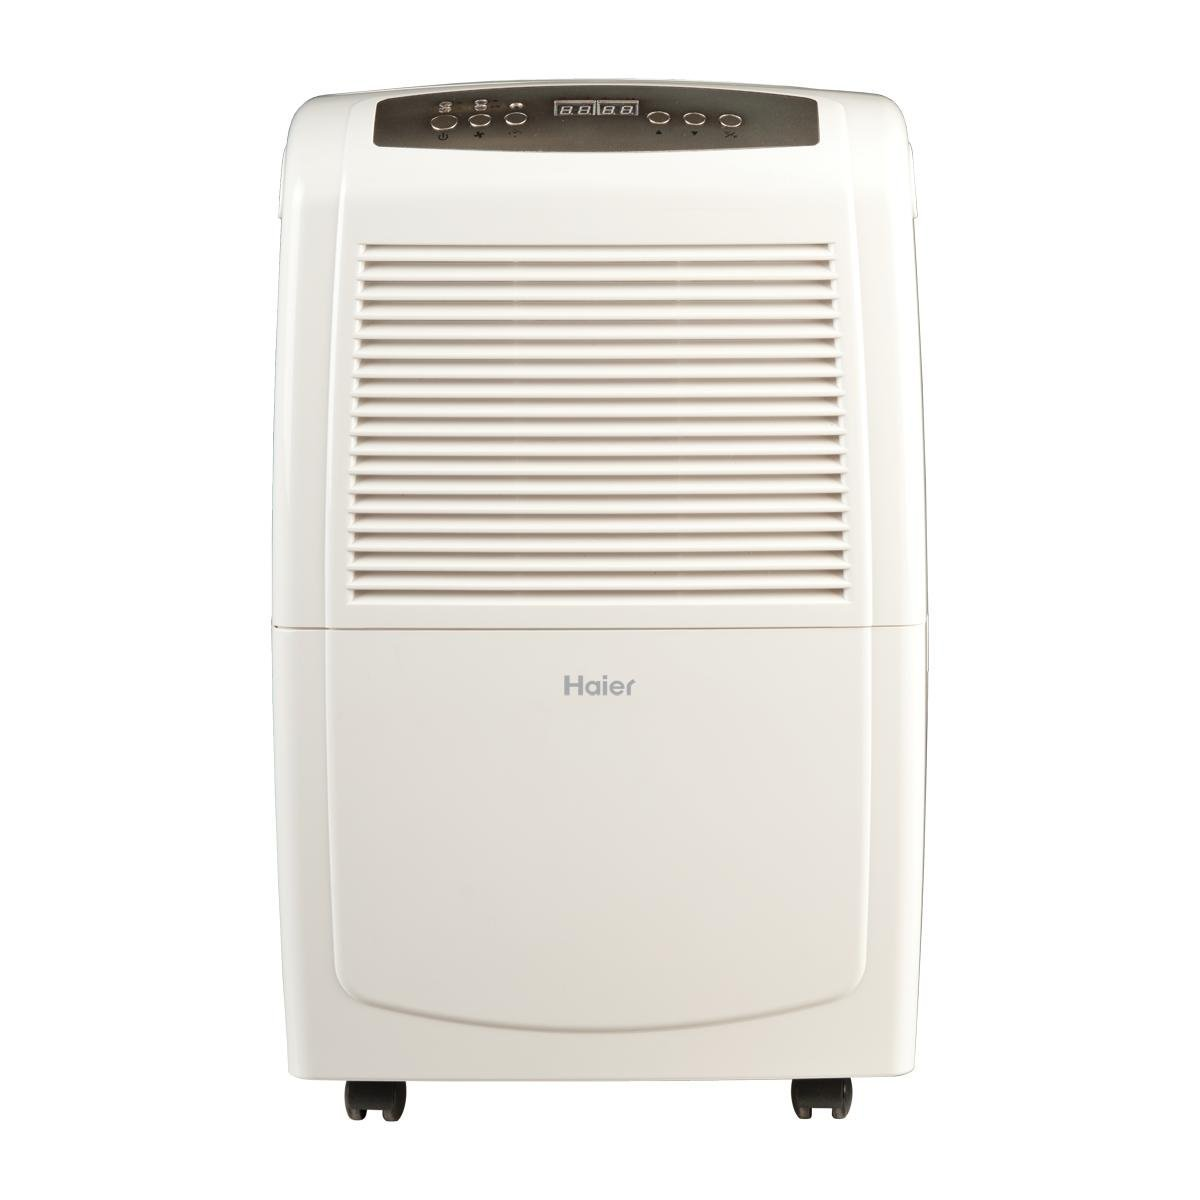 Haier HM70EP Electronic Dehumidifier 70 Pint Energy Star Rated #7A6A51